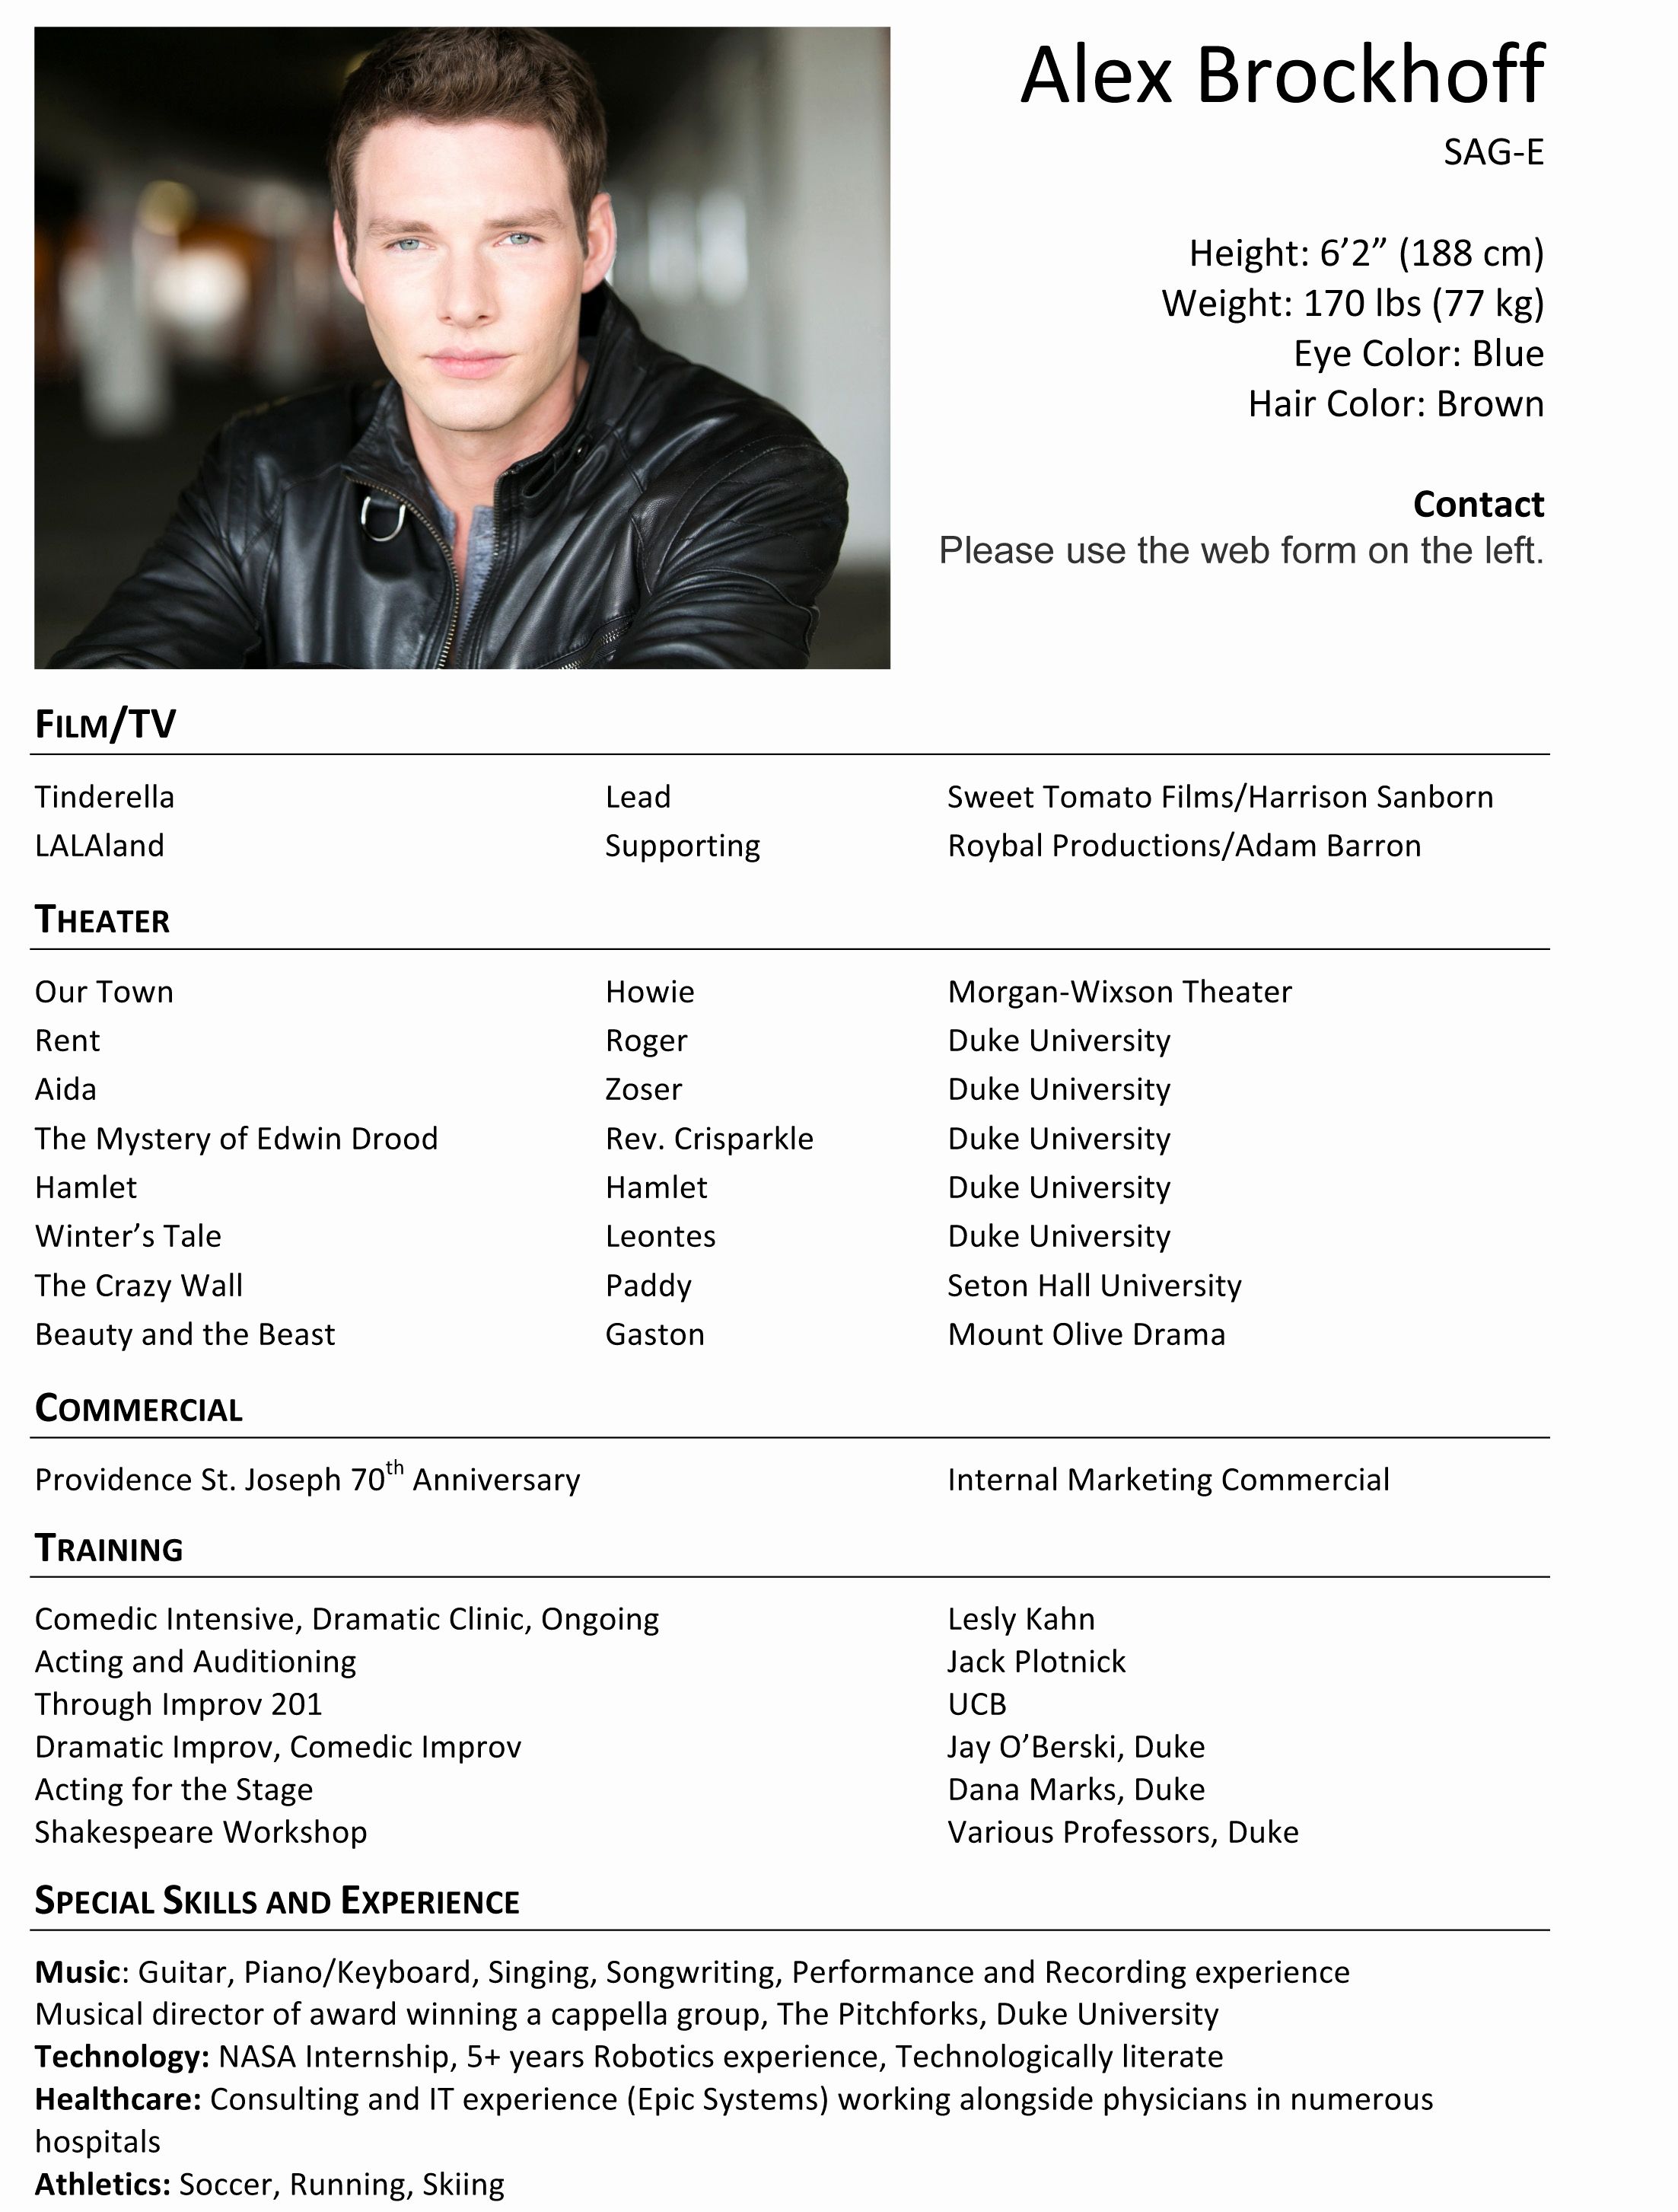 Acting Resume Template essayscope.Com